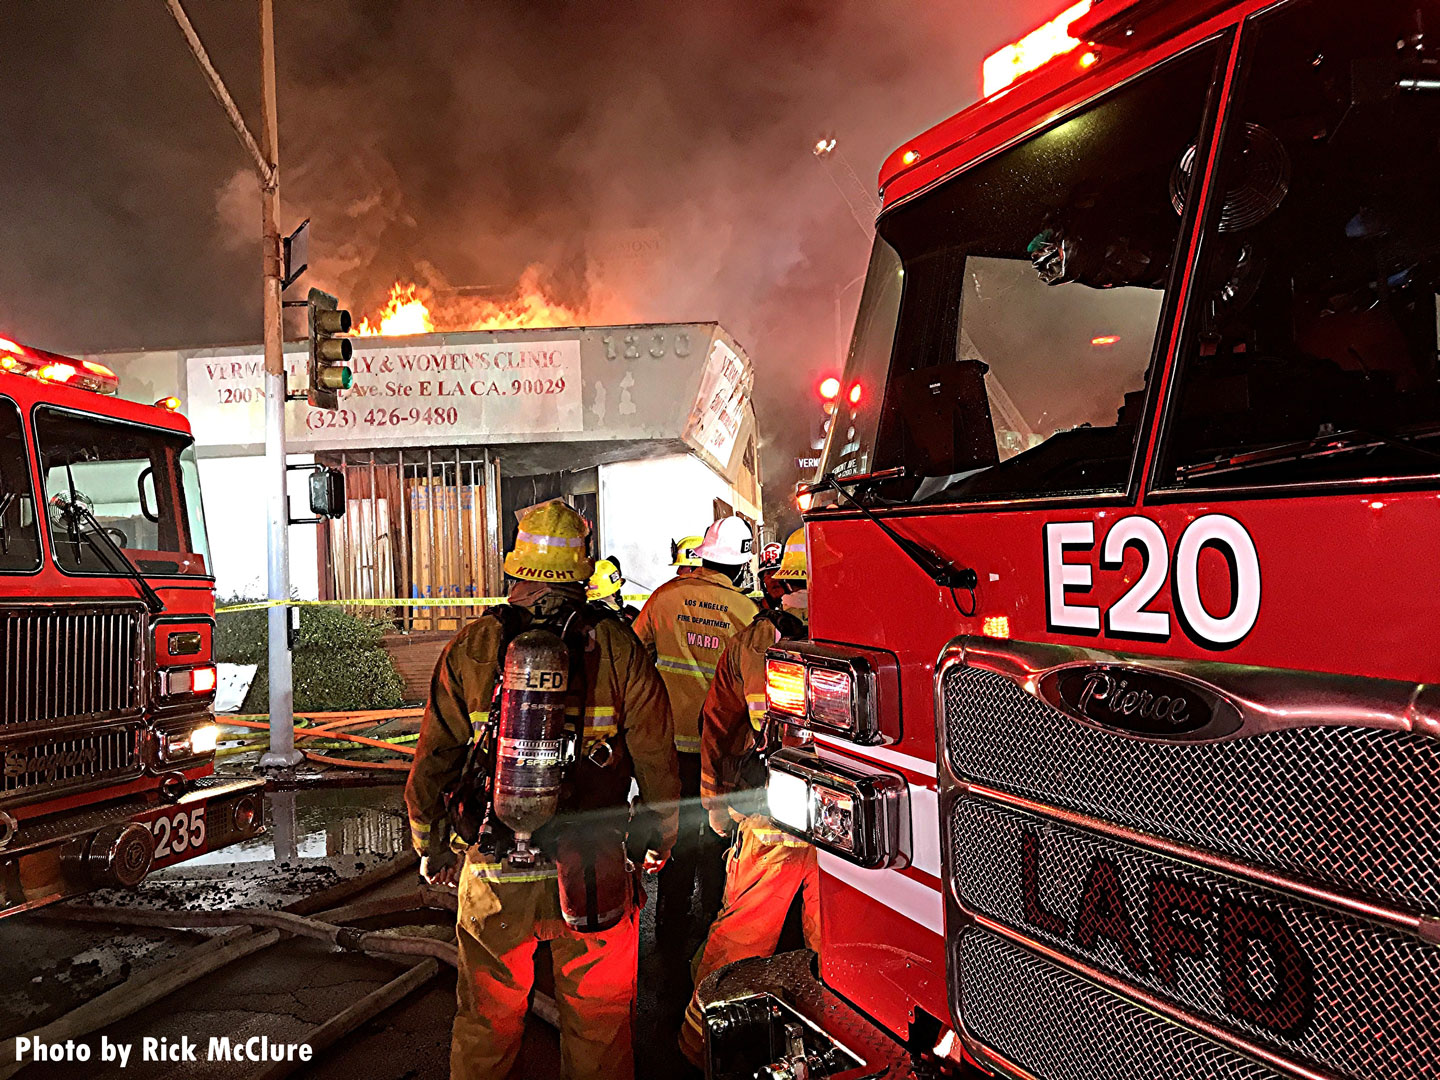 A view of L.A. firefighters and apparatus on the fireground.